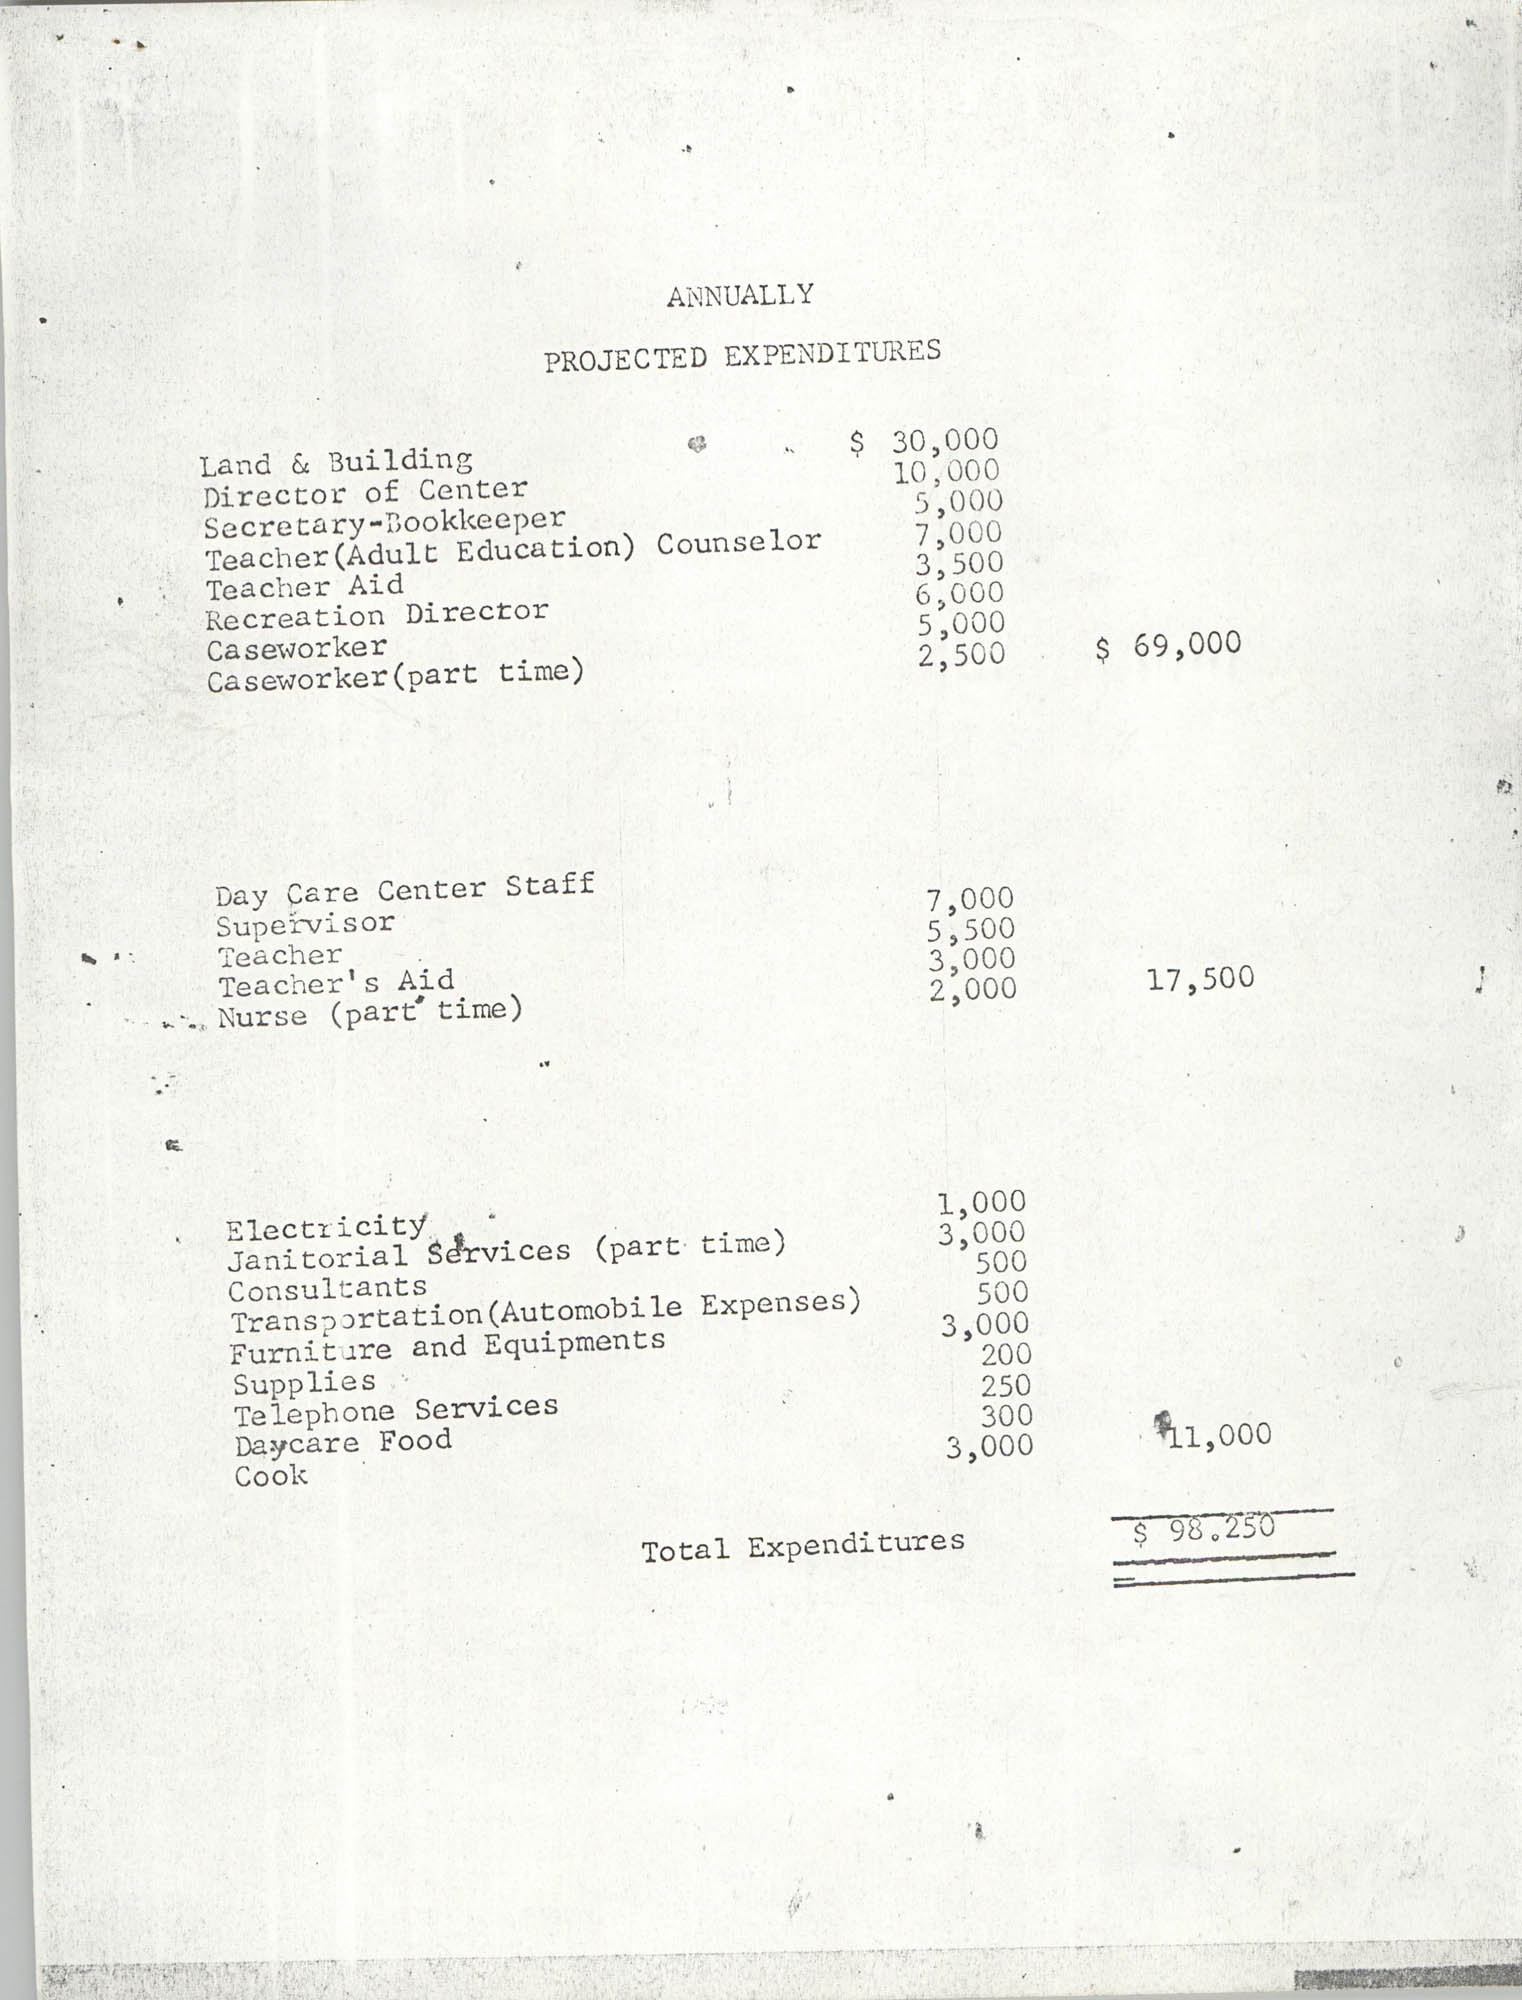 Report on Petersfield, South Carolina, Annually Projected Expenditures